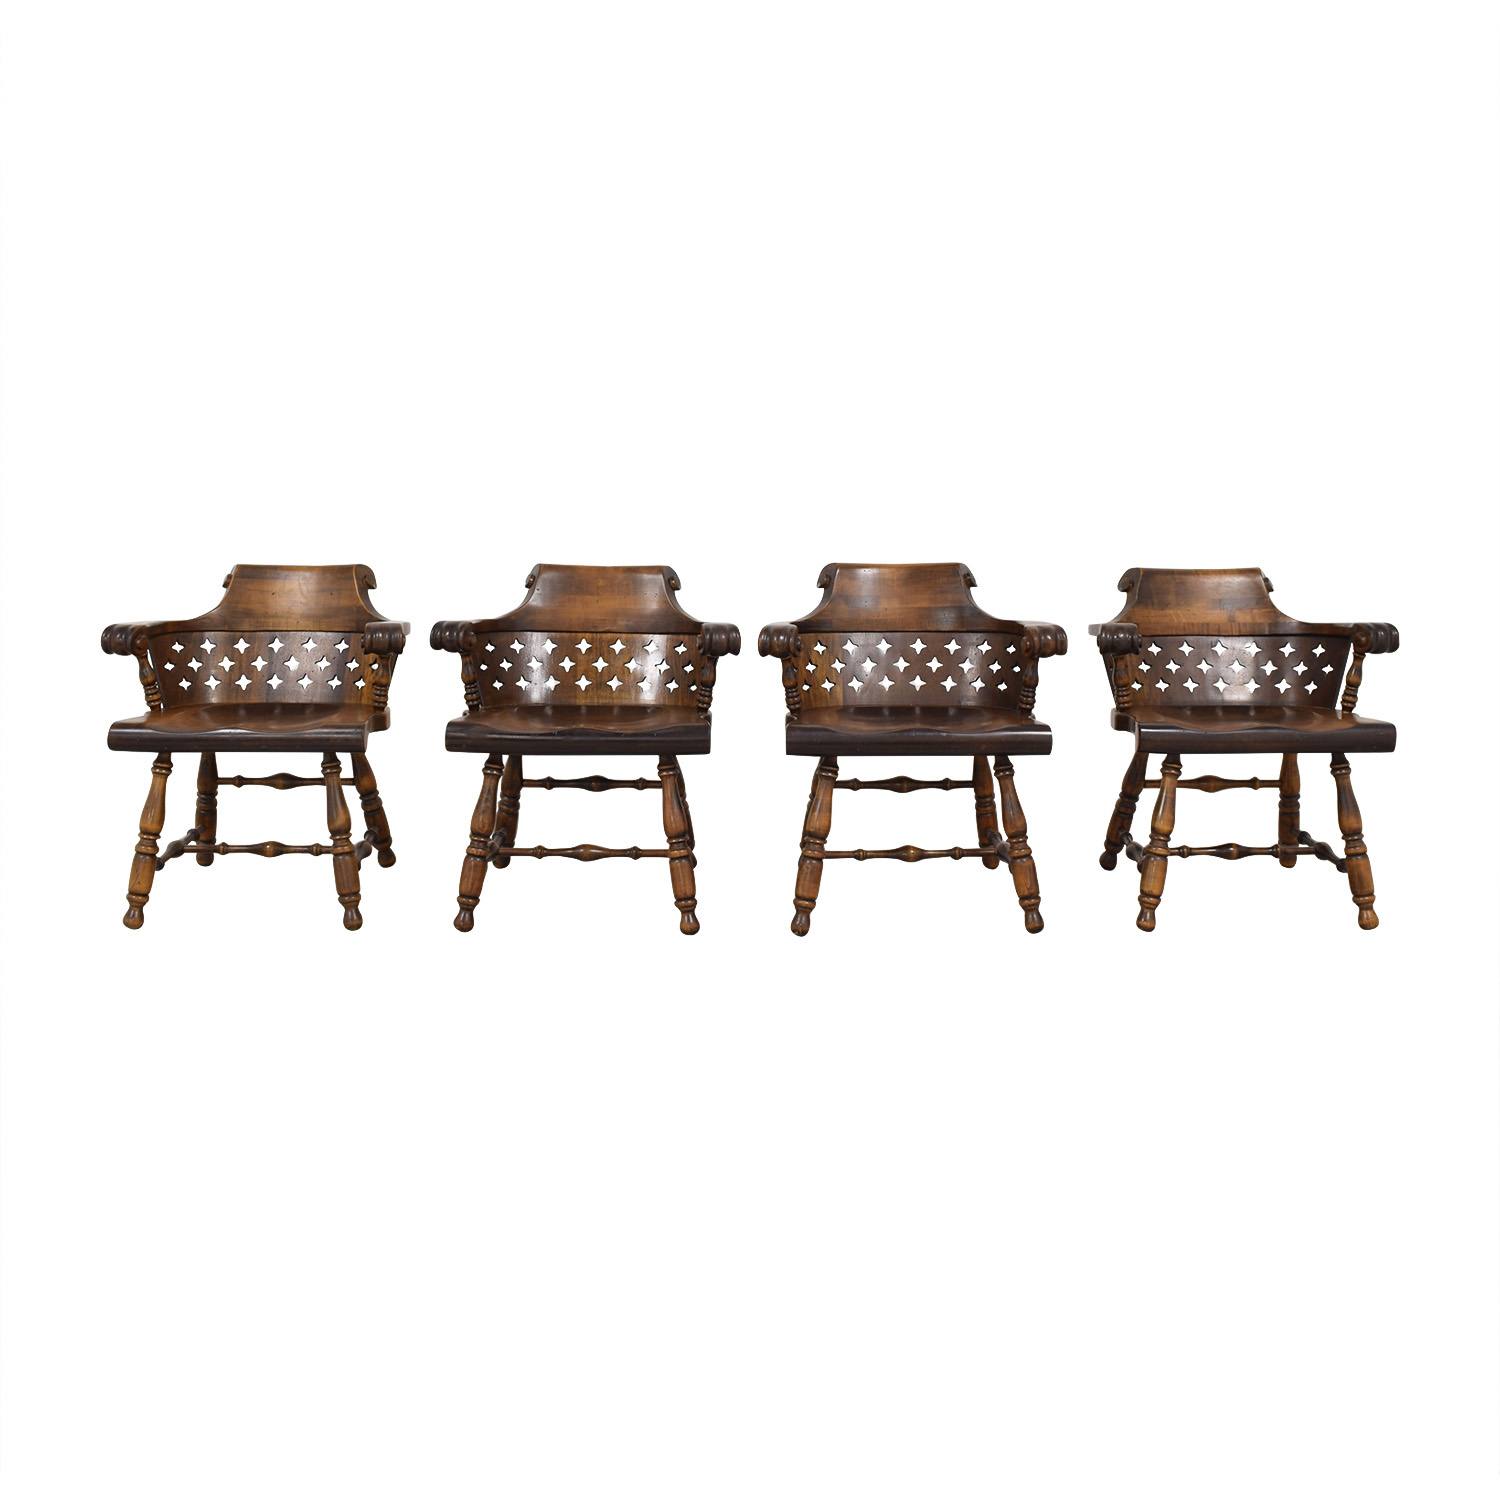 Ethan Allen Ethan Allen Patterned Cutout Dining Chairs Chairs